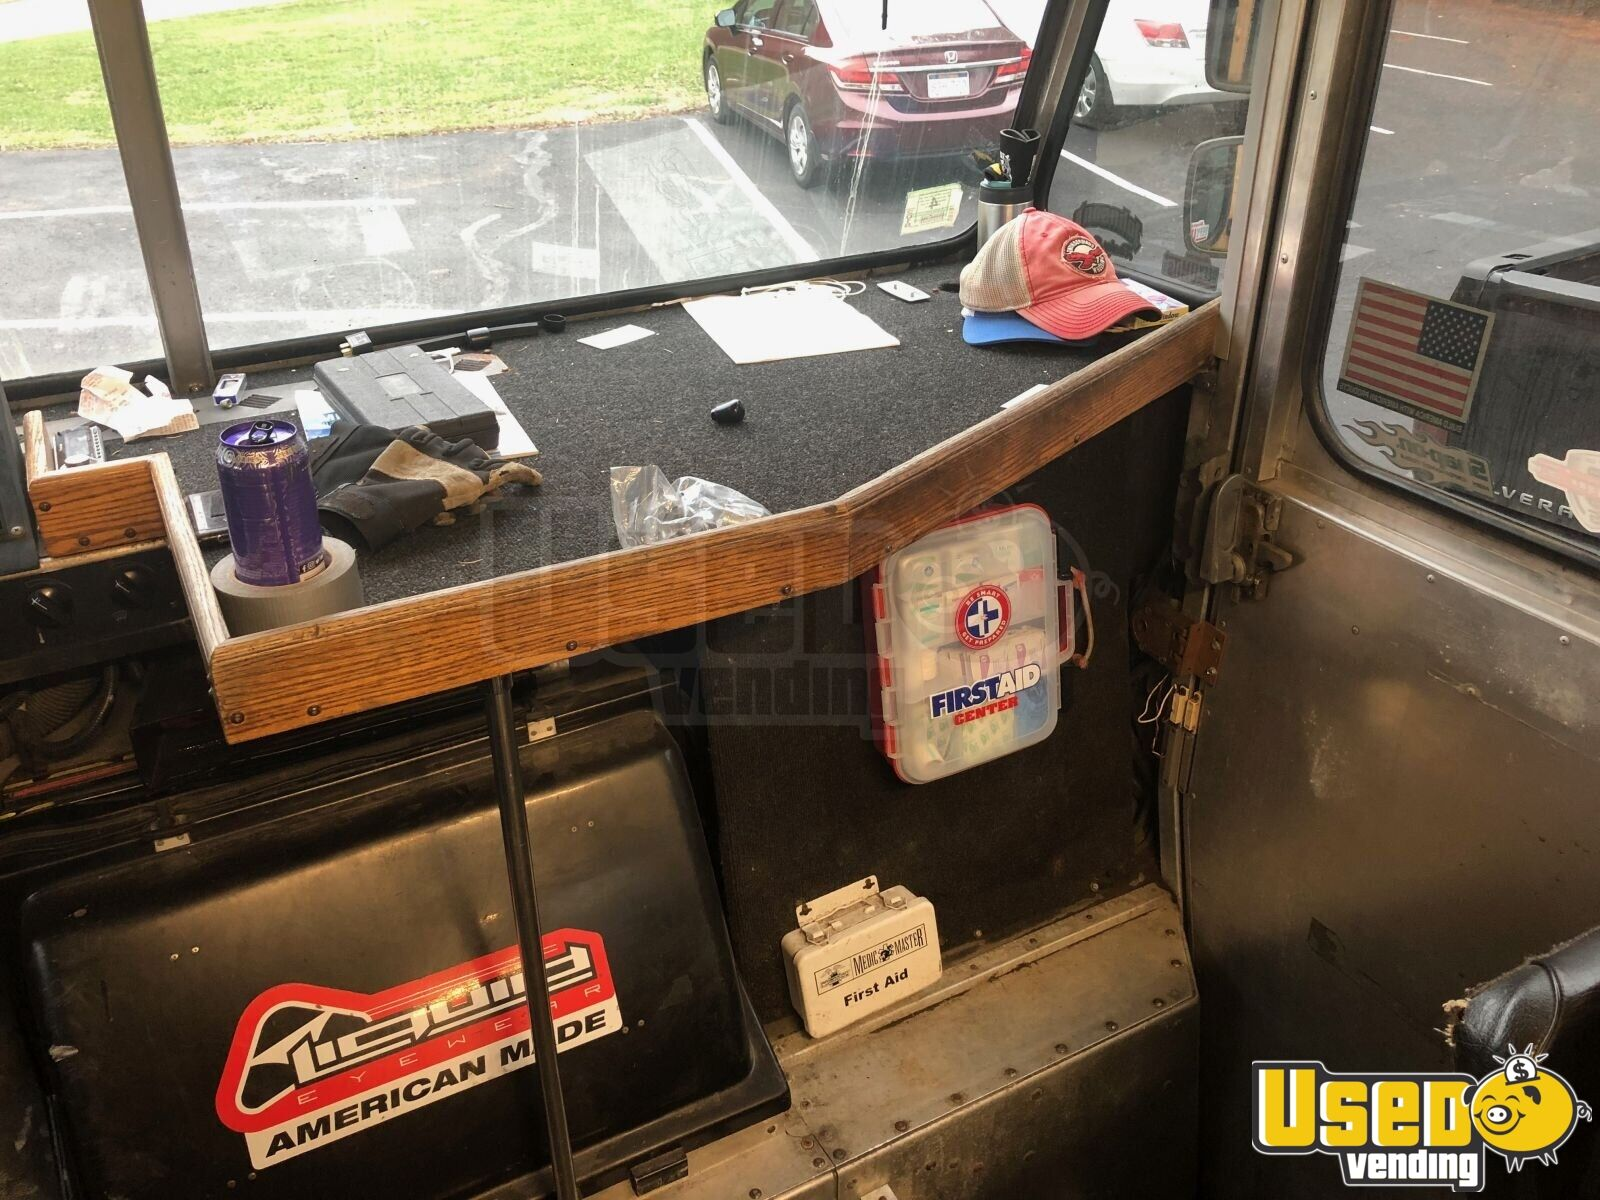 1999 Freightliner Mt-45 Food Truck Cash Register West Virginia Diesel Engine for Sale - 27